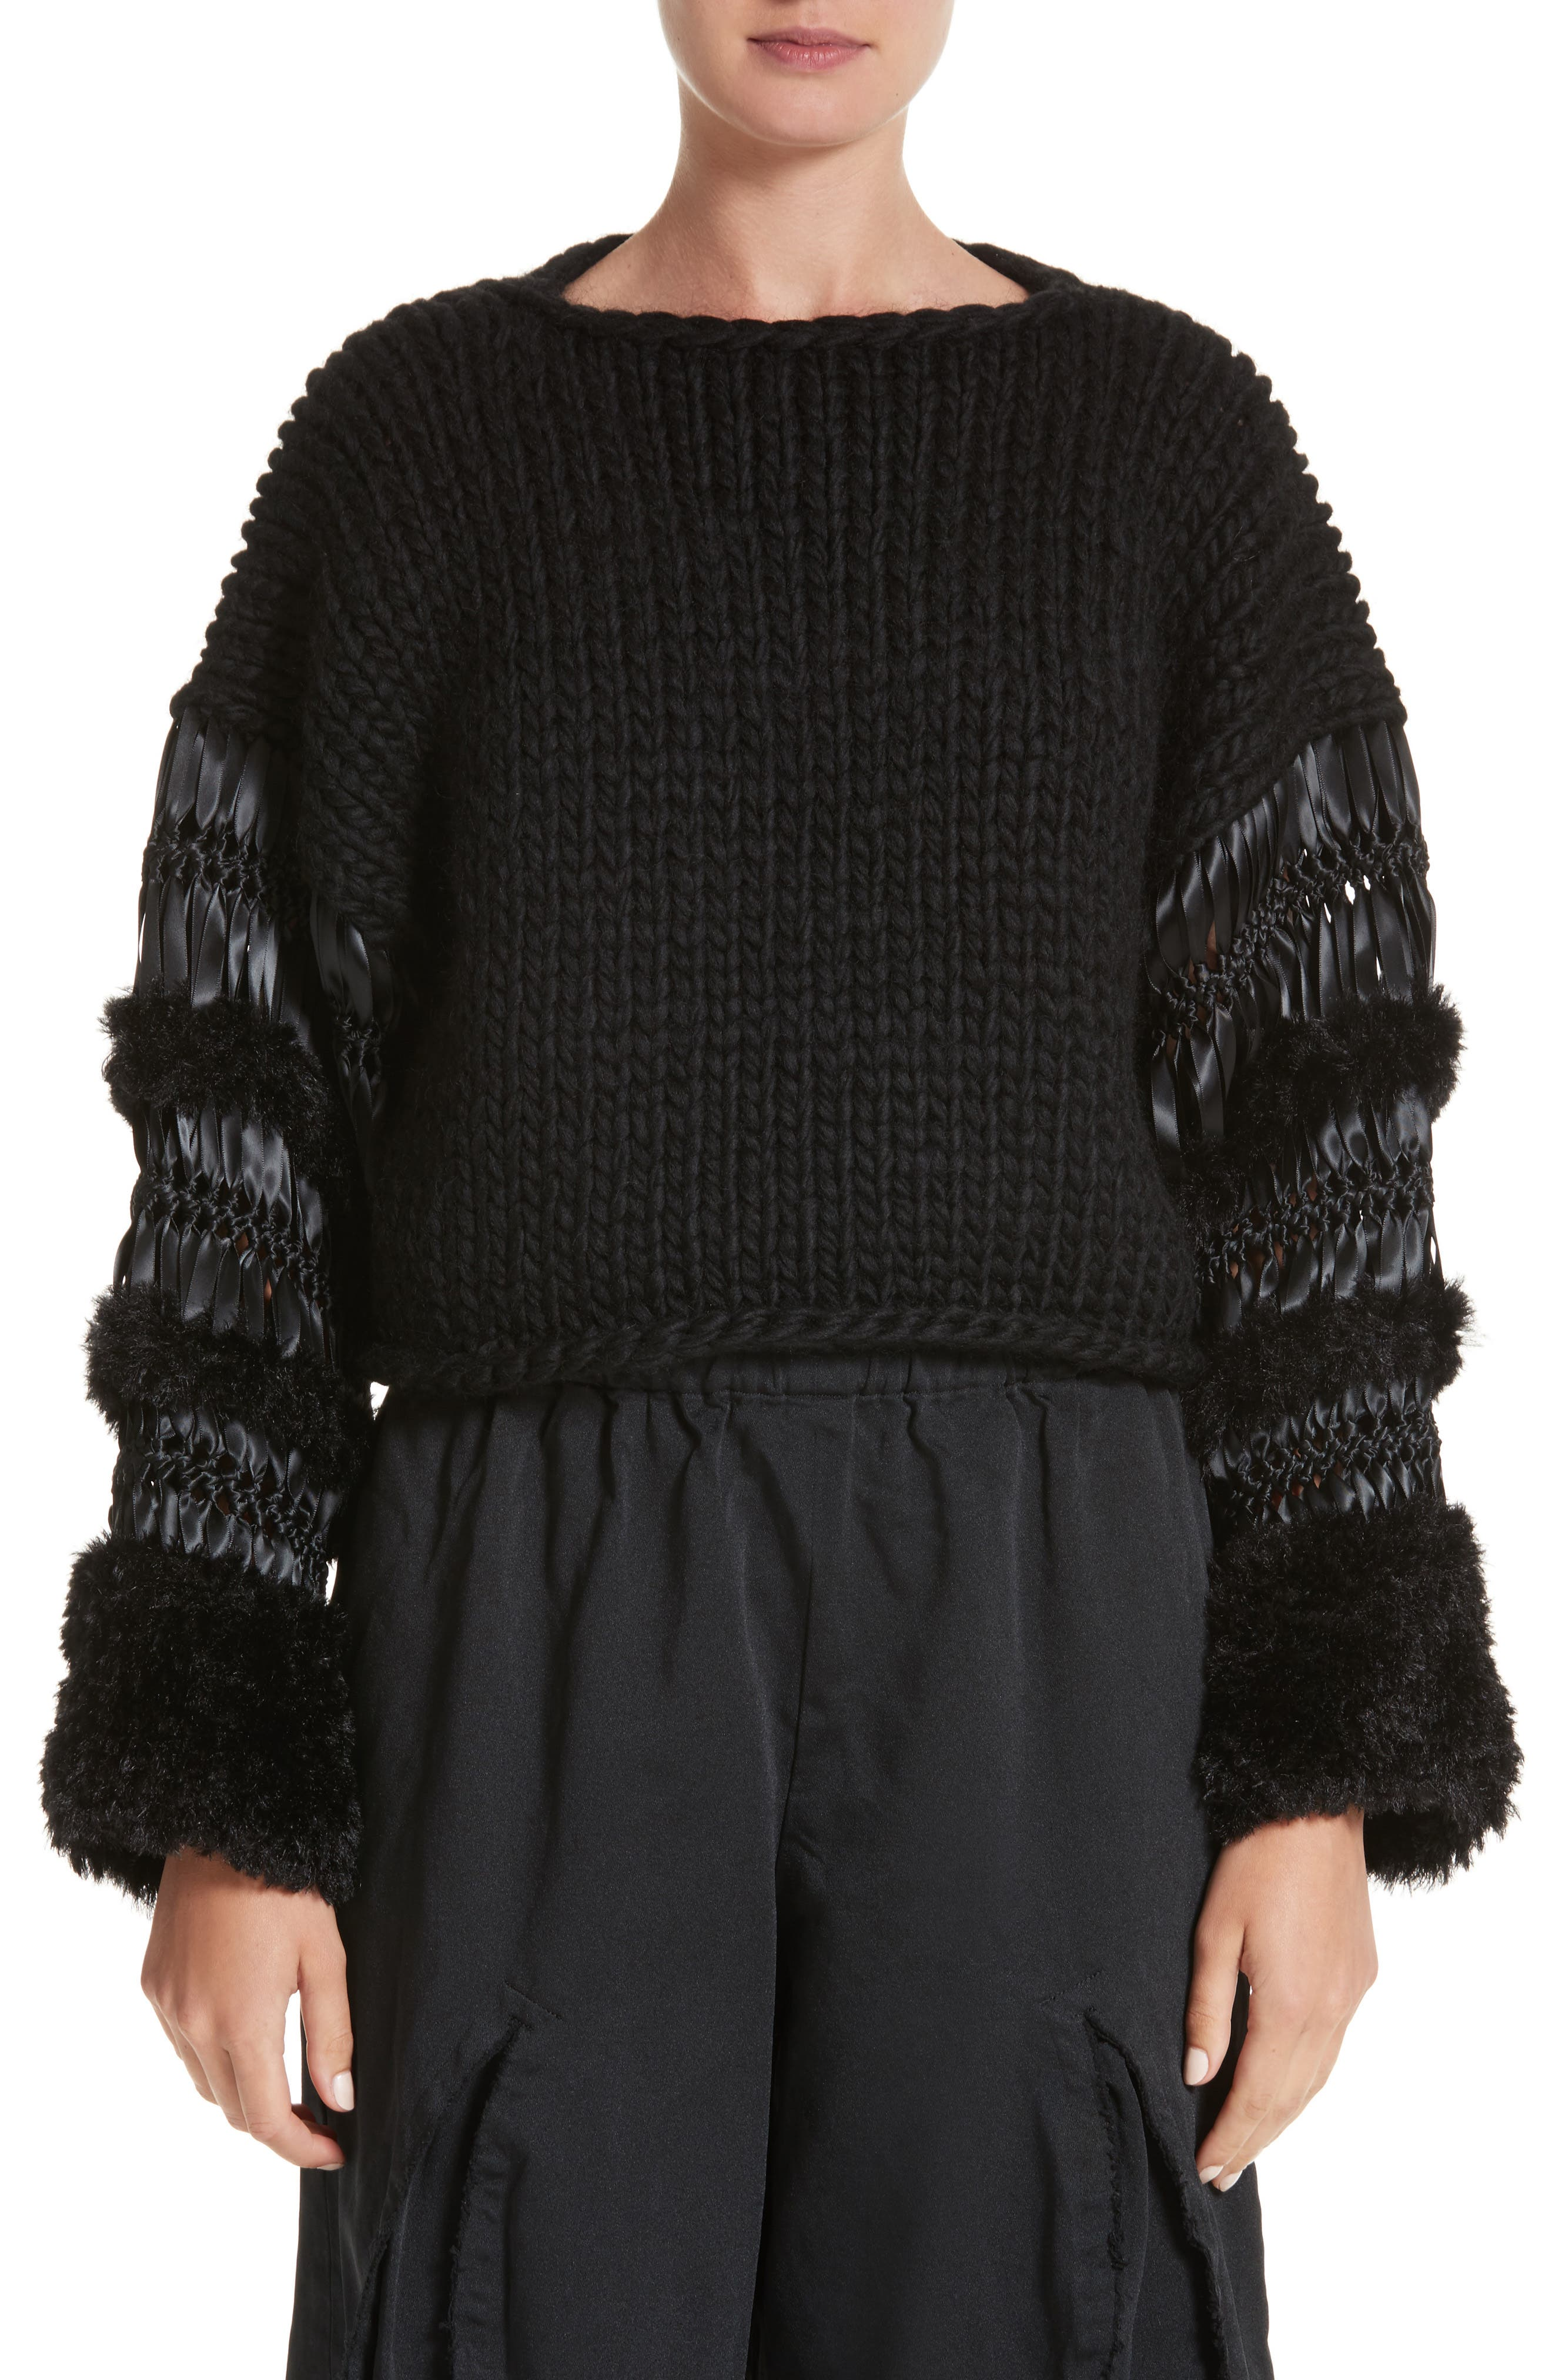 noir kei ninomiya Mixed Media Sweater